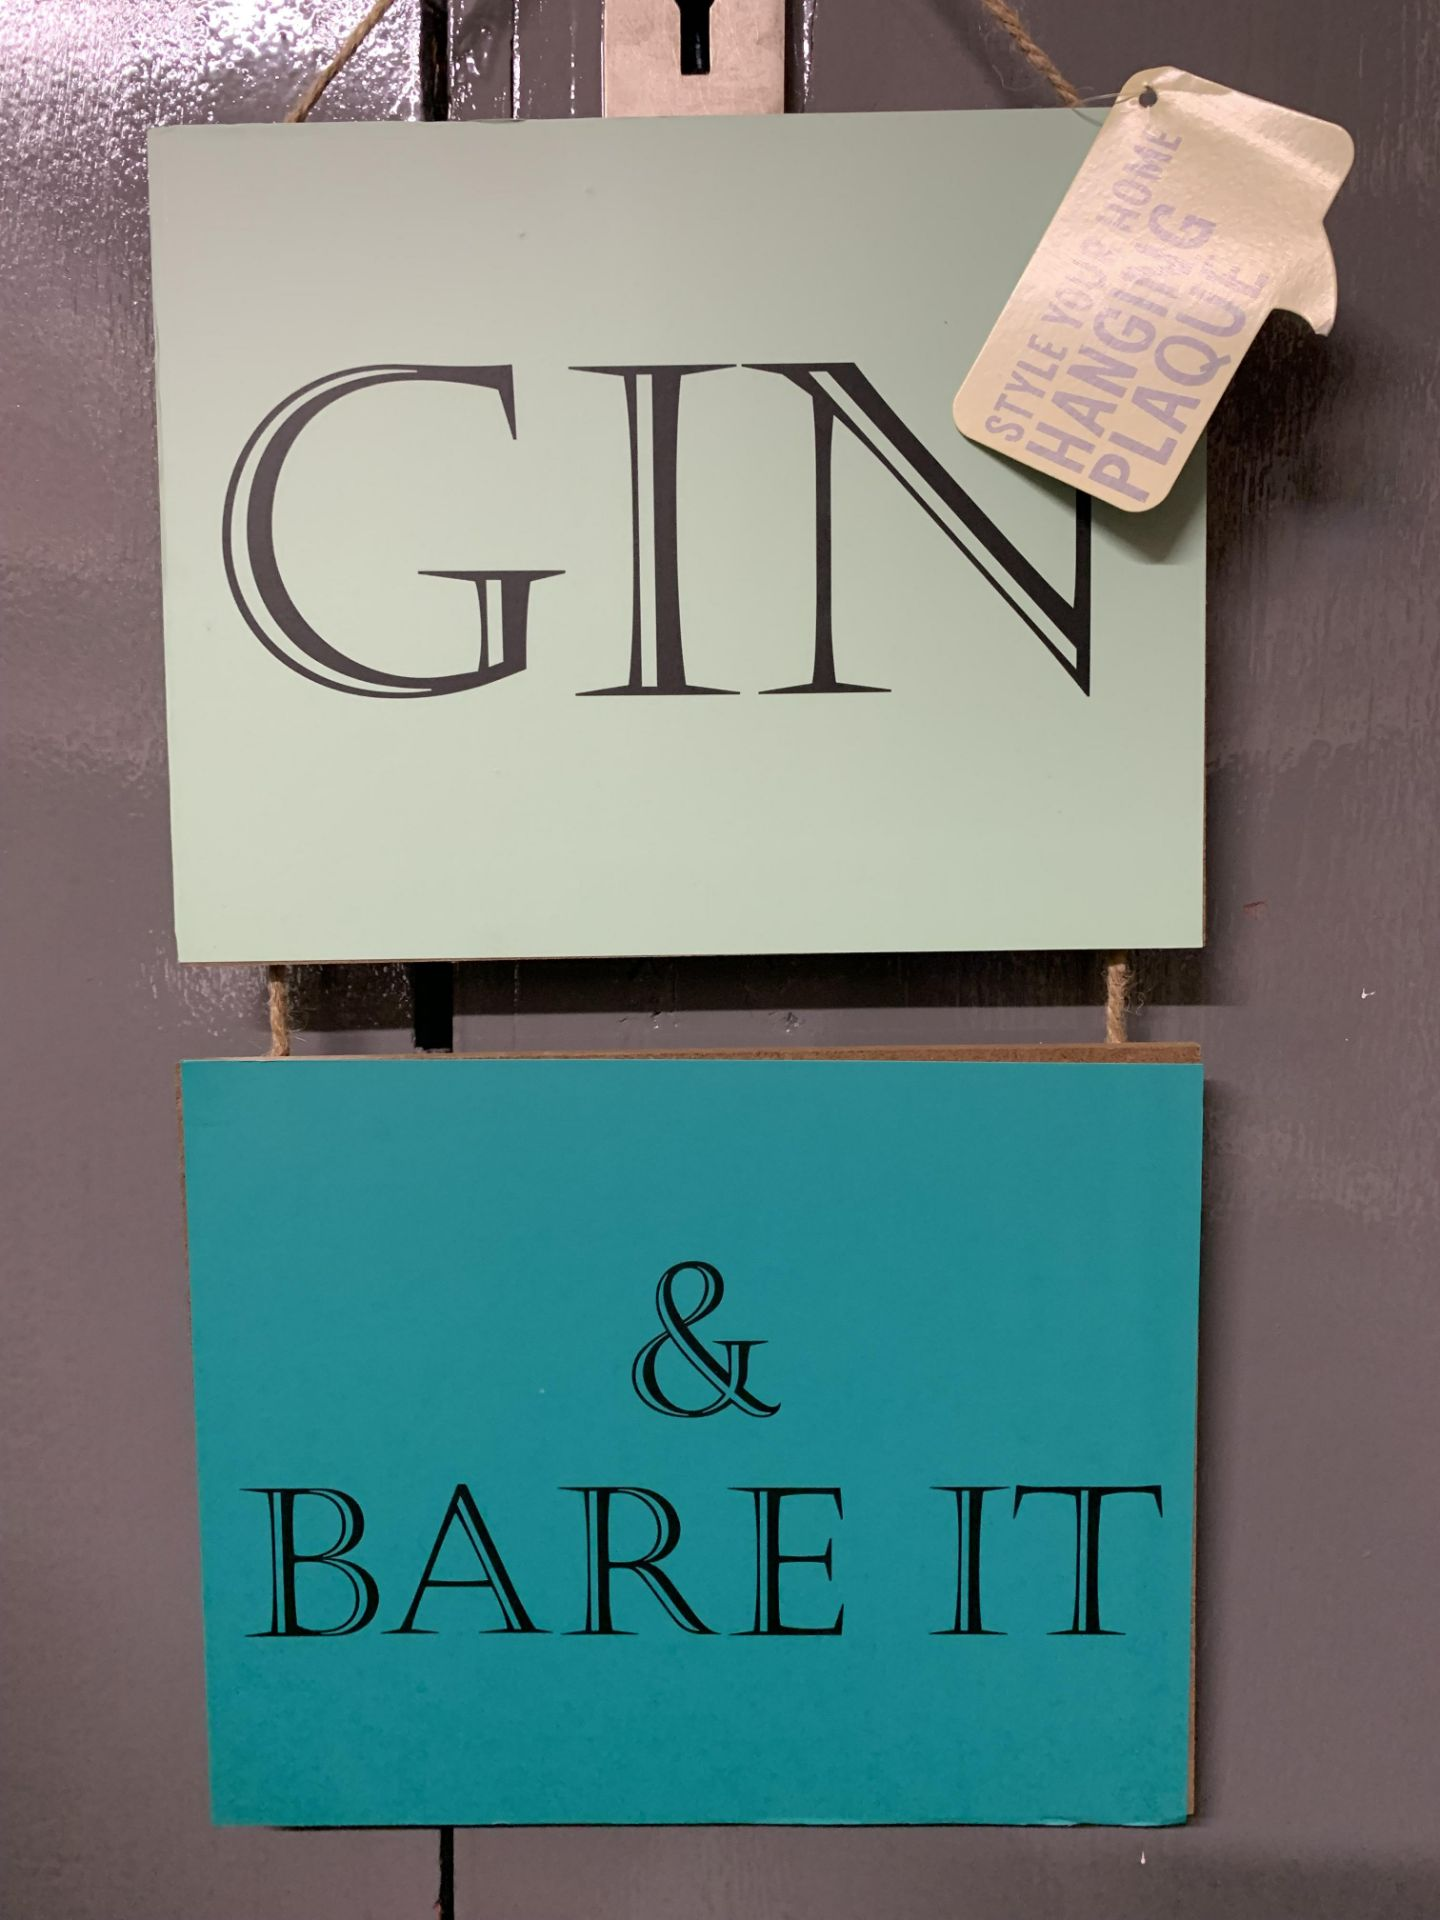 24 x Brand New Hanging Plaques - Gin & Bare It, Let'S Stay Home & Cuddle